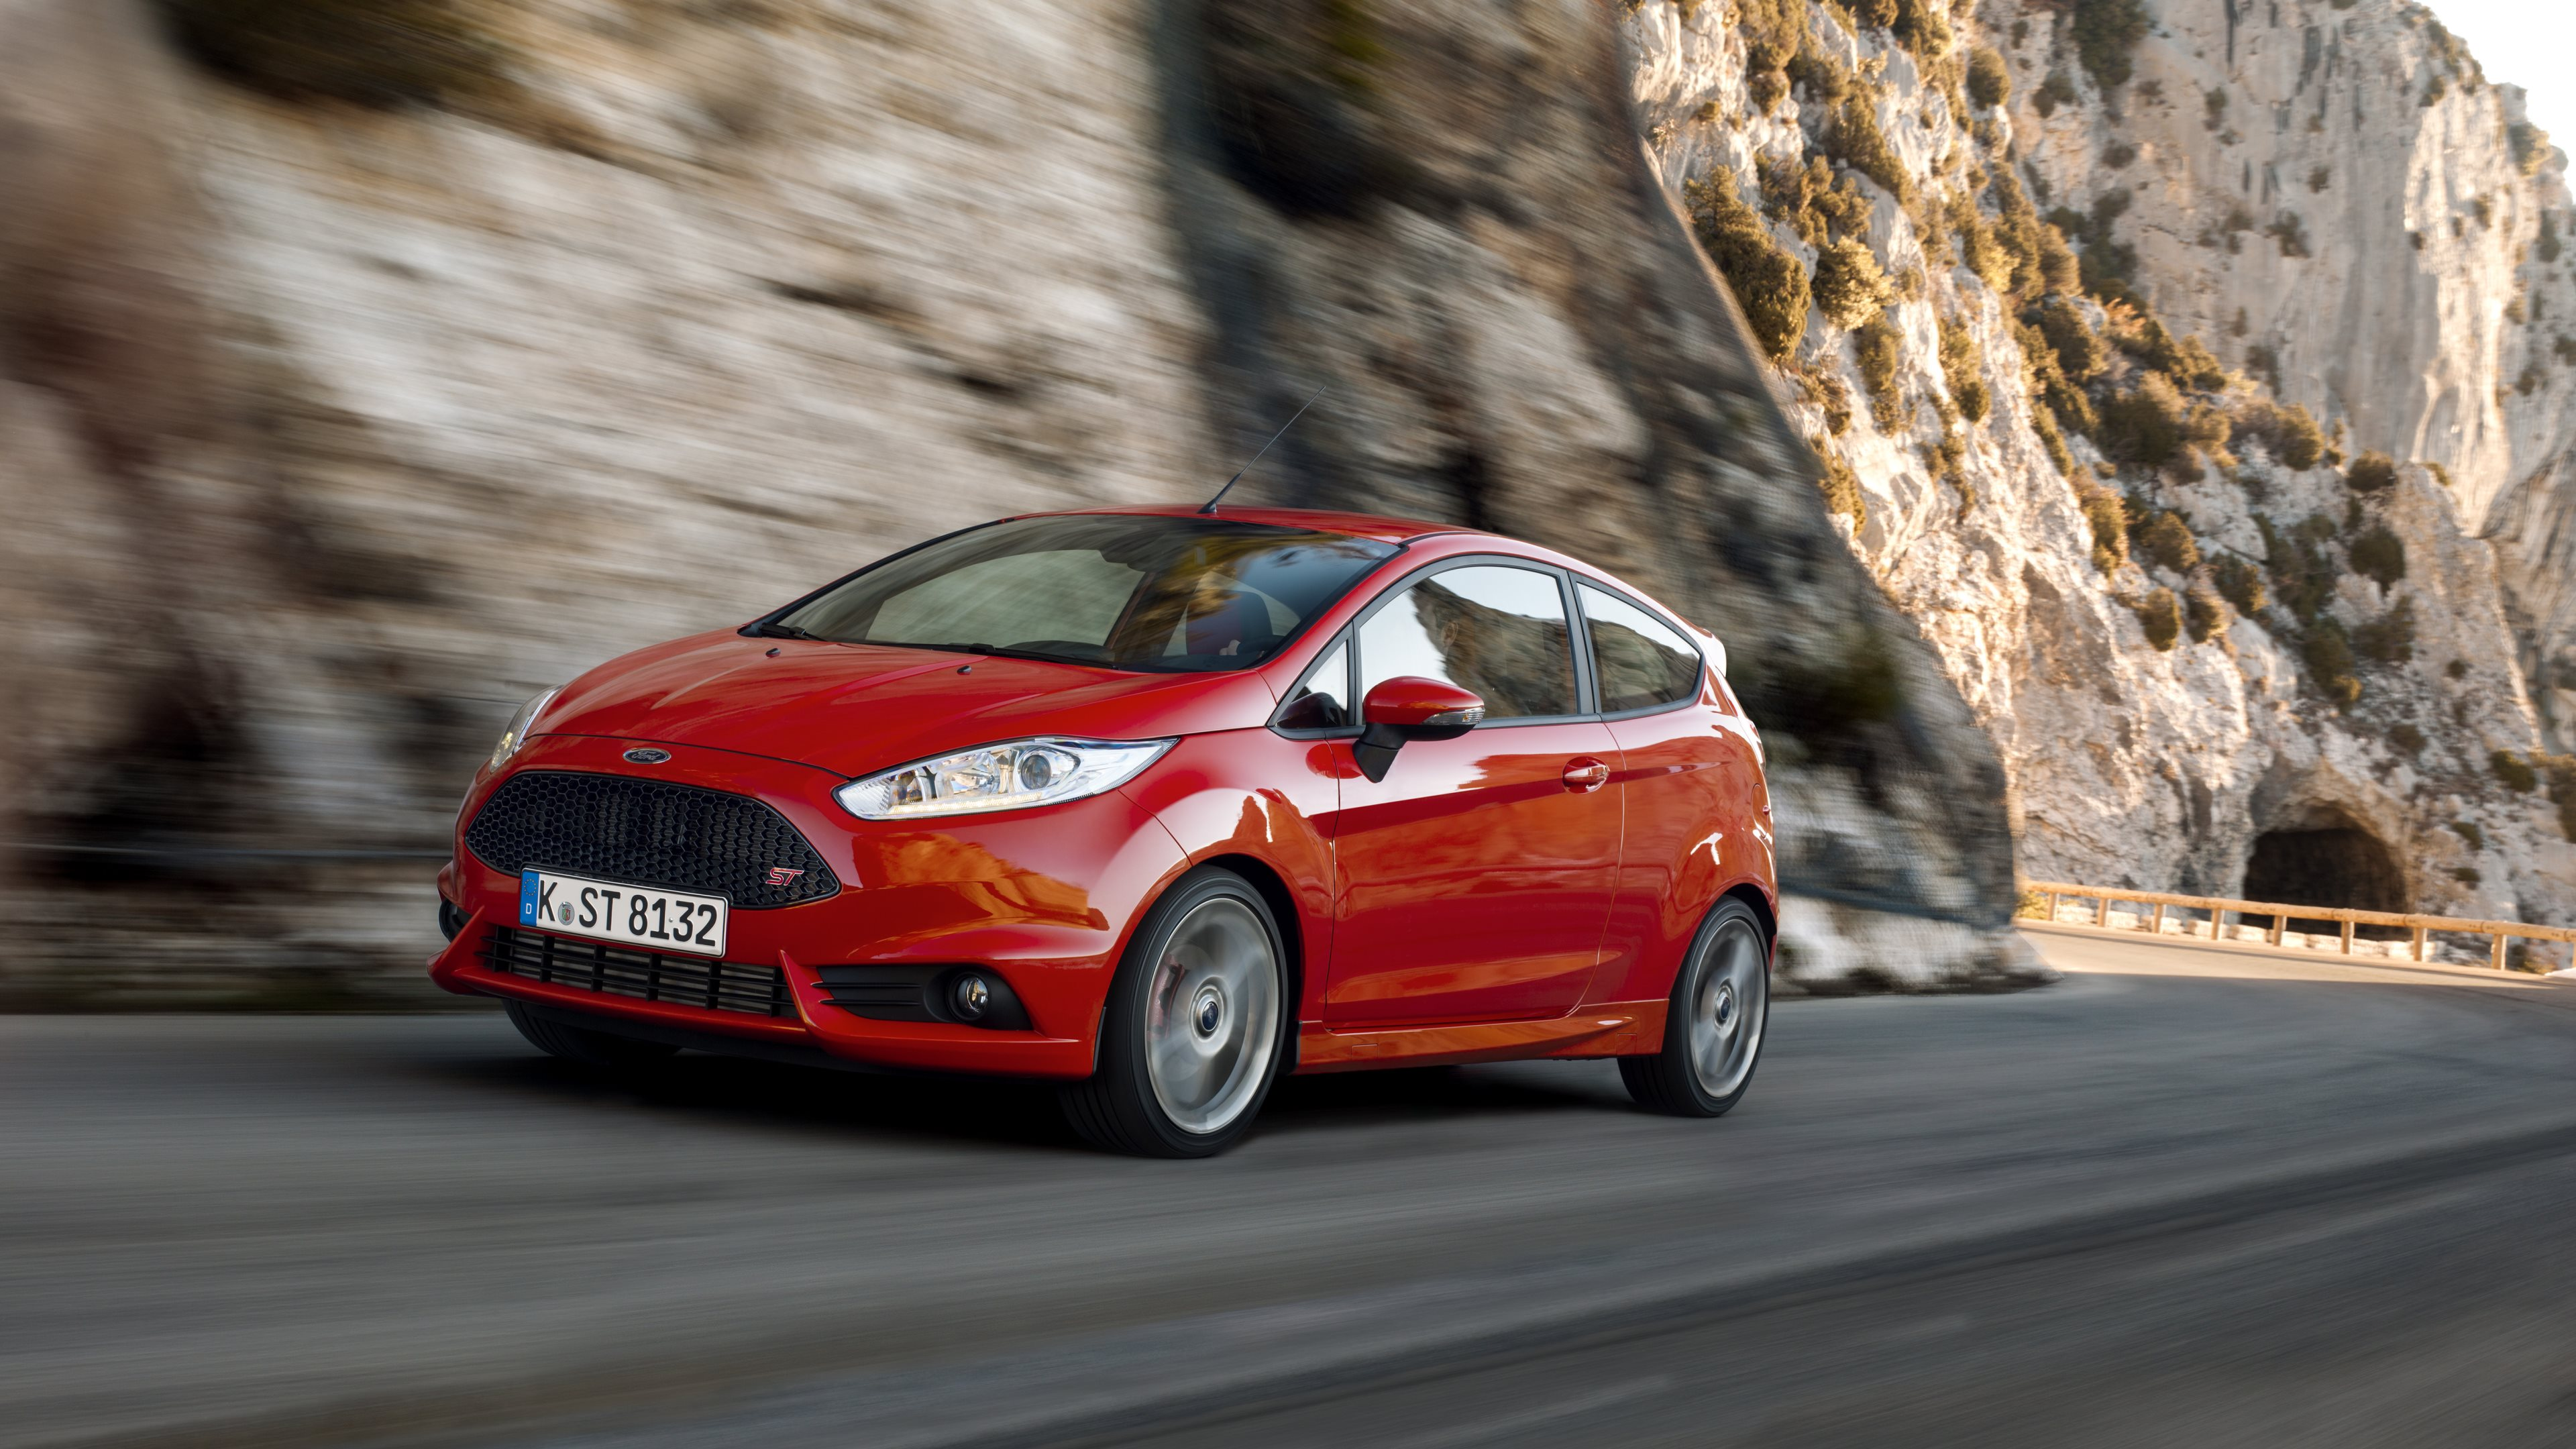 A Ford Fiesta ST with 182HP as a first car? What do you think about it? What is the ST like as a daily? & A Ford Fiesta ST with 182HP as a first car? What do you think ... markmcfarlin.com